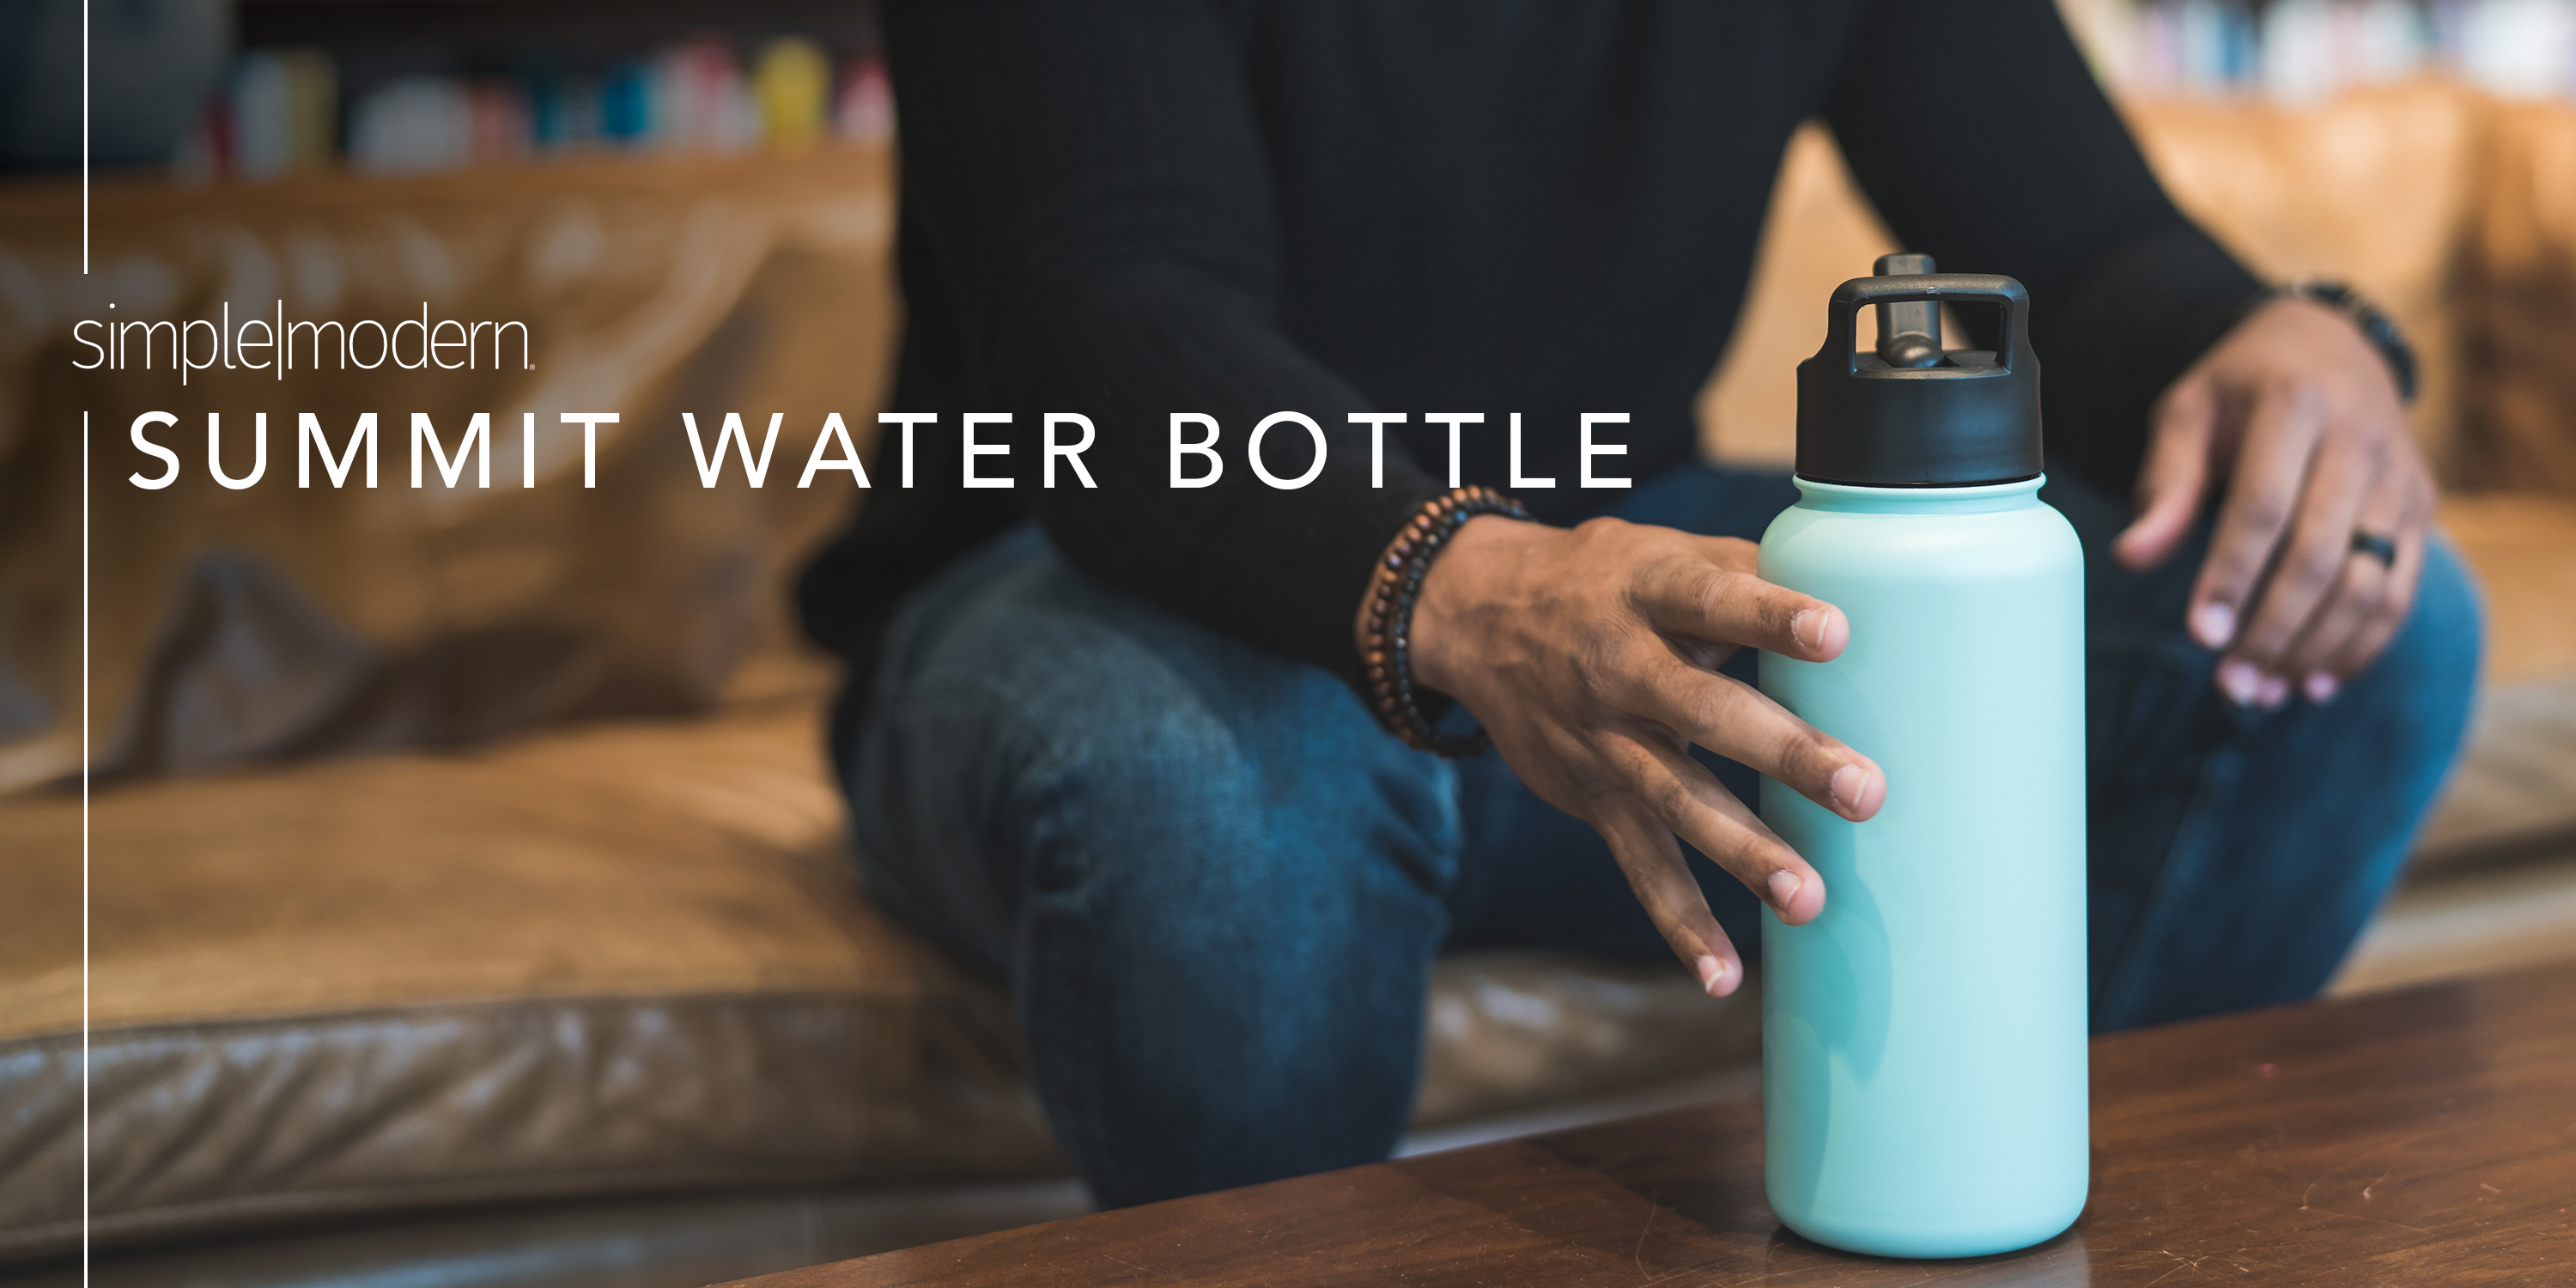 Simple Modern 32oz Summit Water Bottle with Straw Lid Gifts for Men Women Dads Leakproof Travel Tumbler Stainless Steel Auburn Tigers